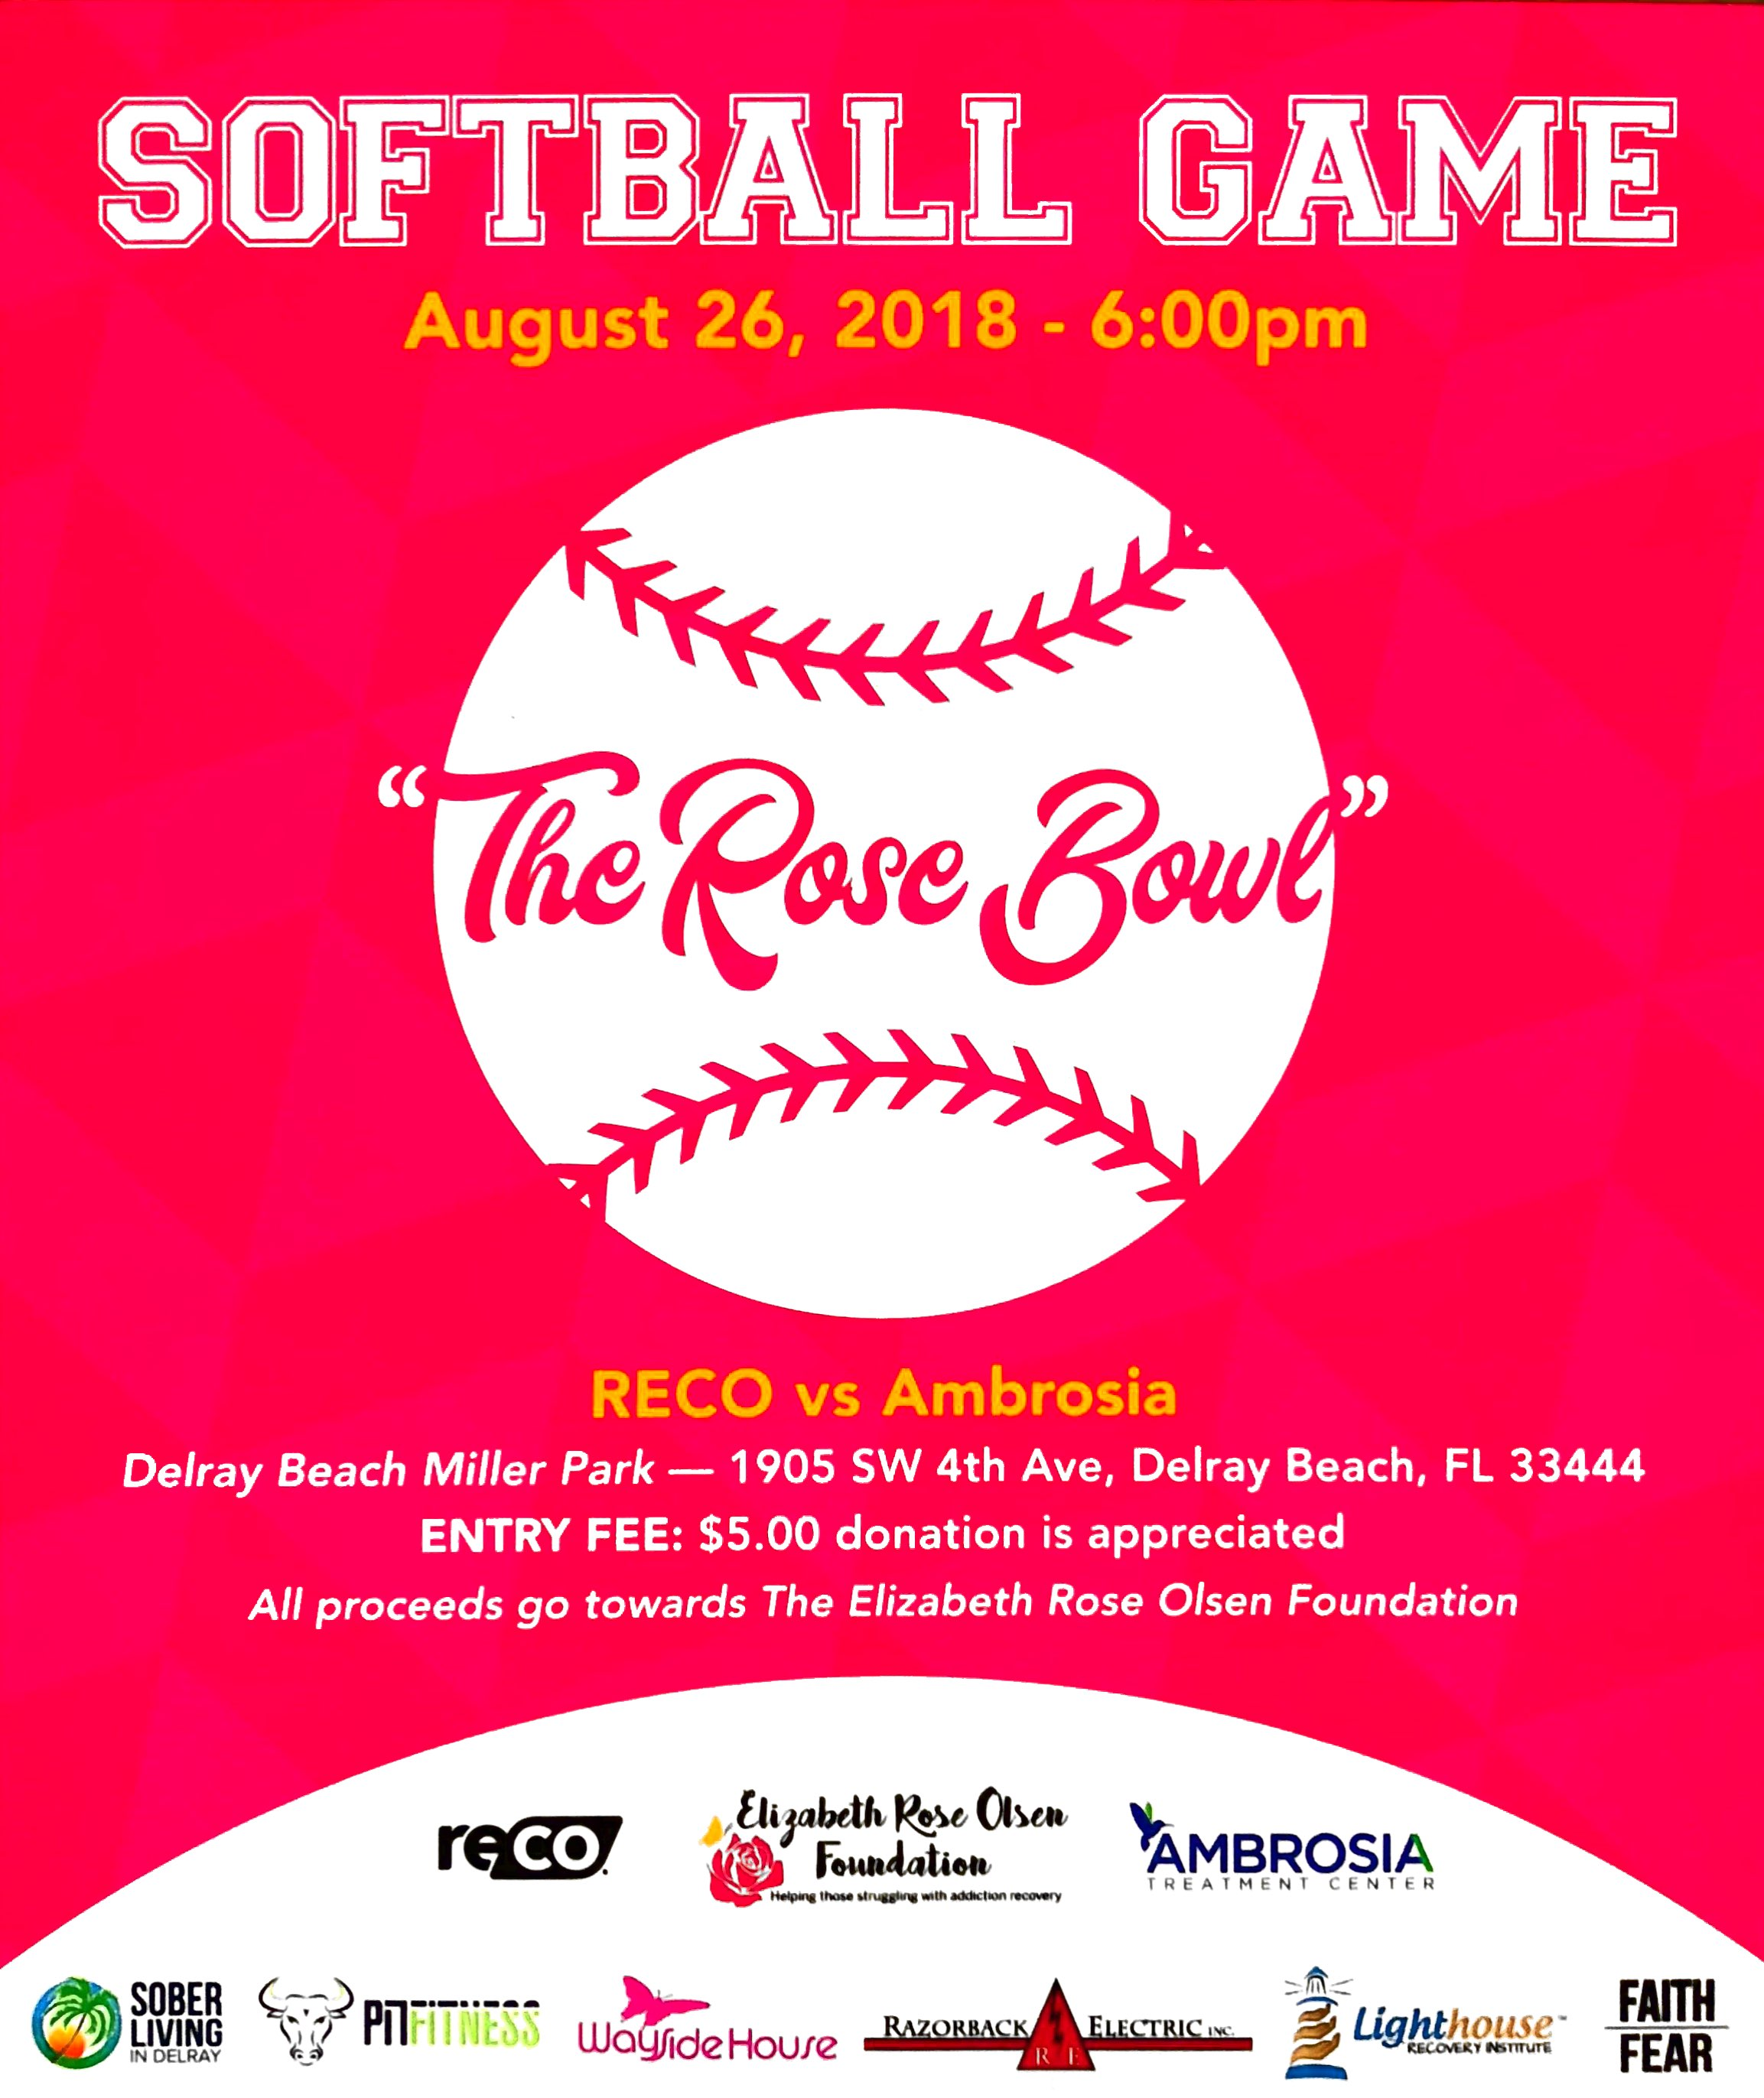 Redemption Halfway House Delray Beach: Softball Game: The Rose Bowl